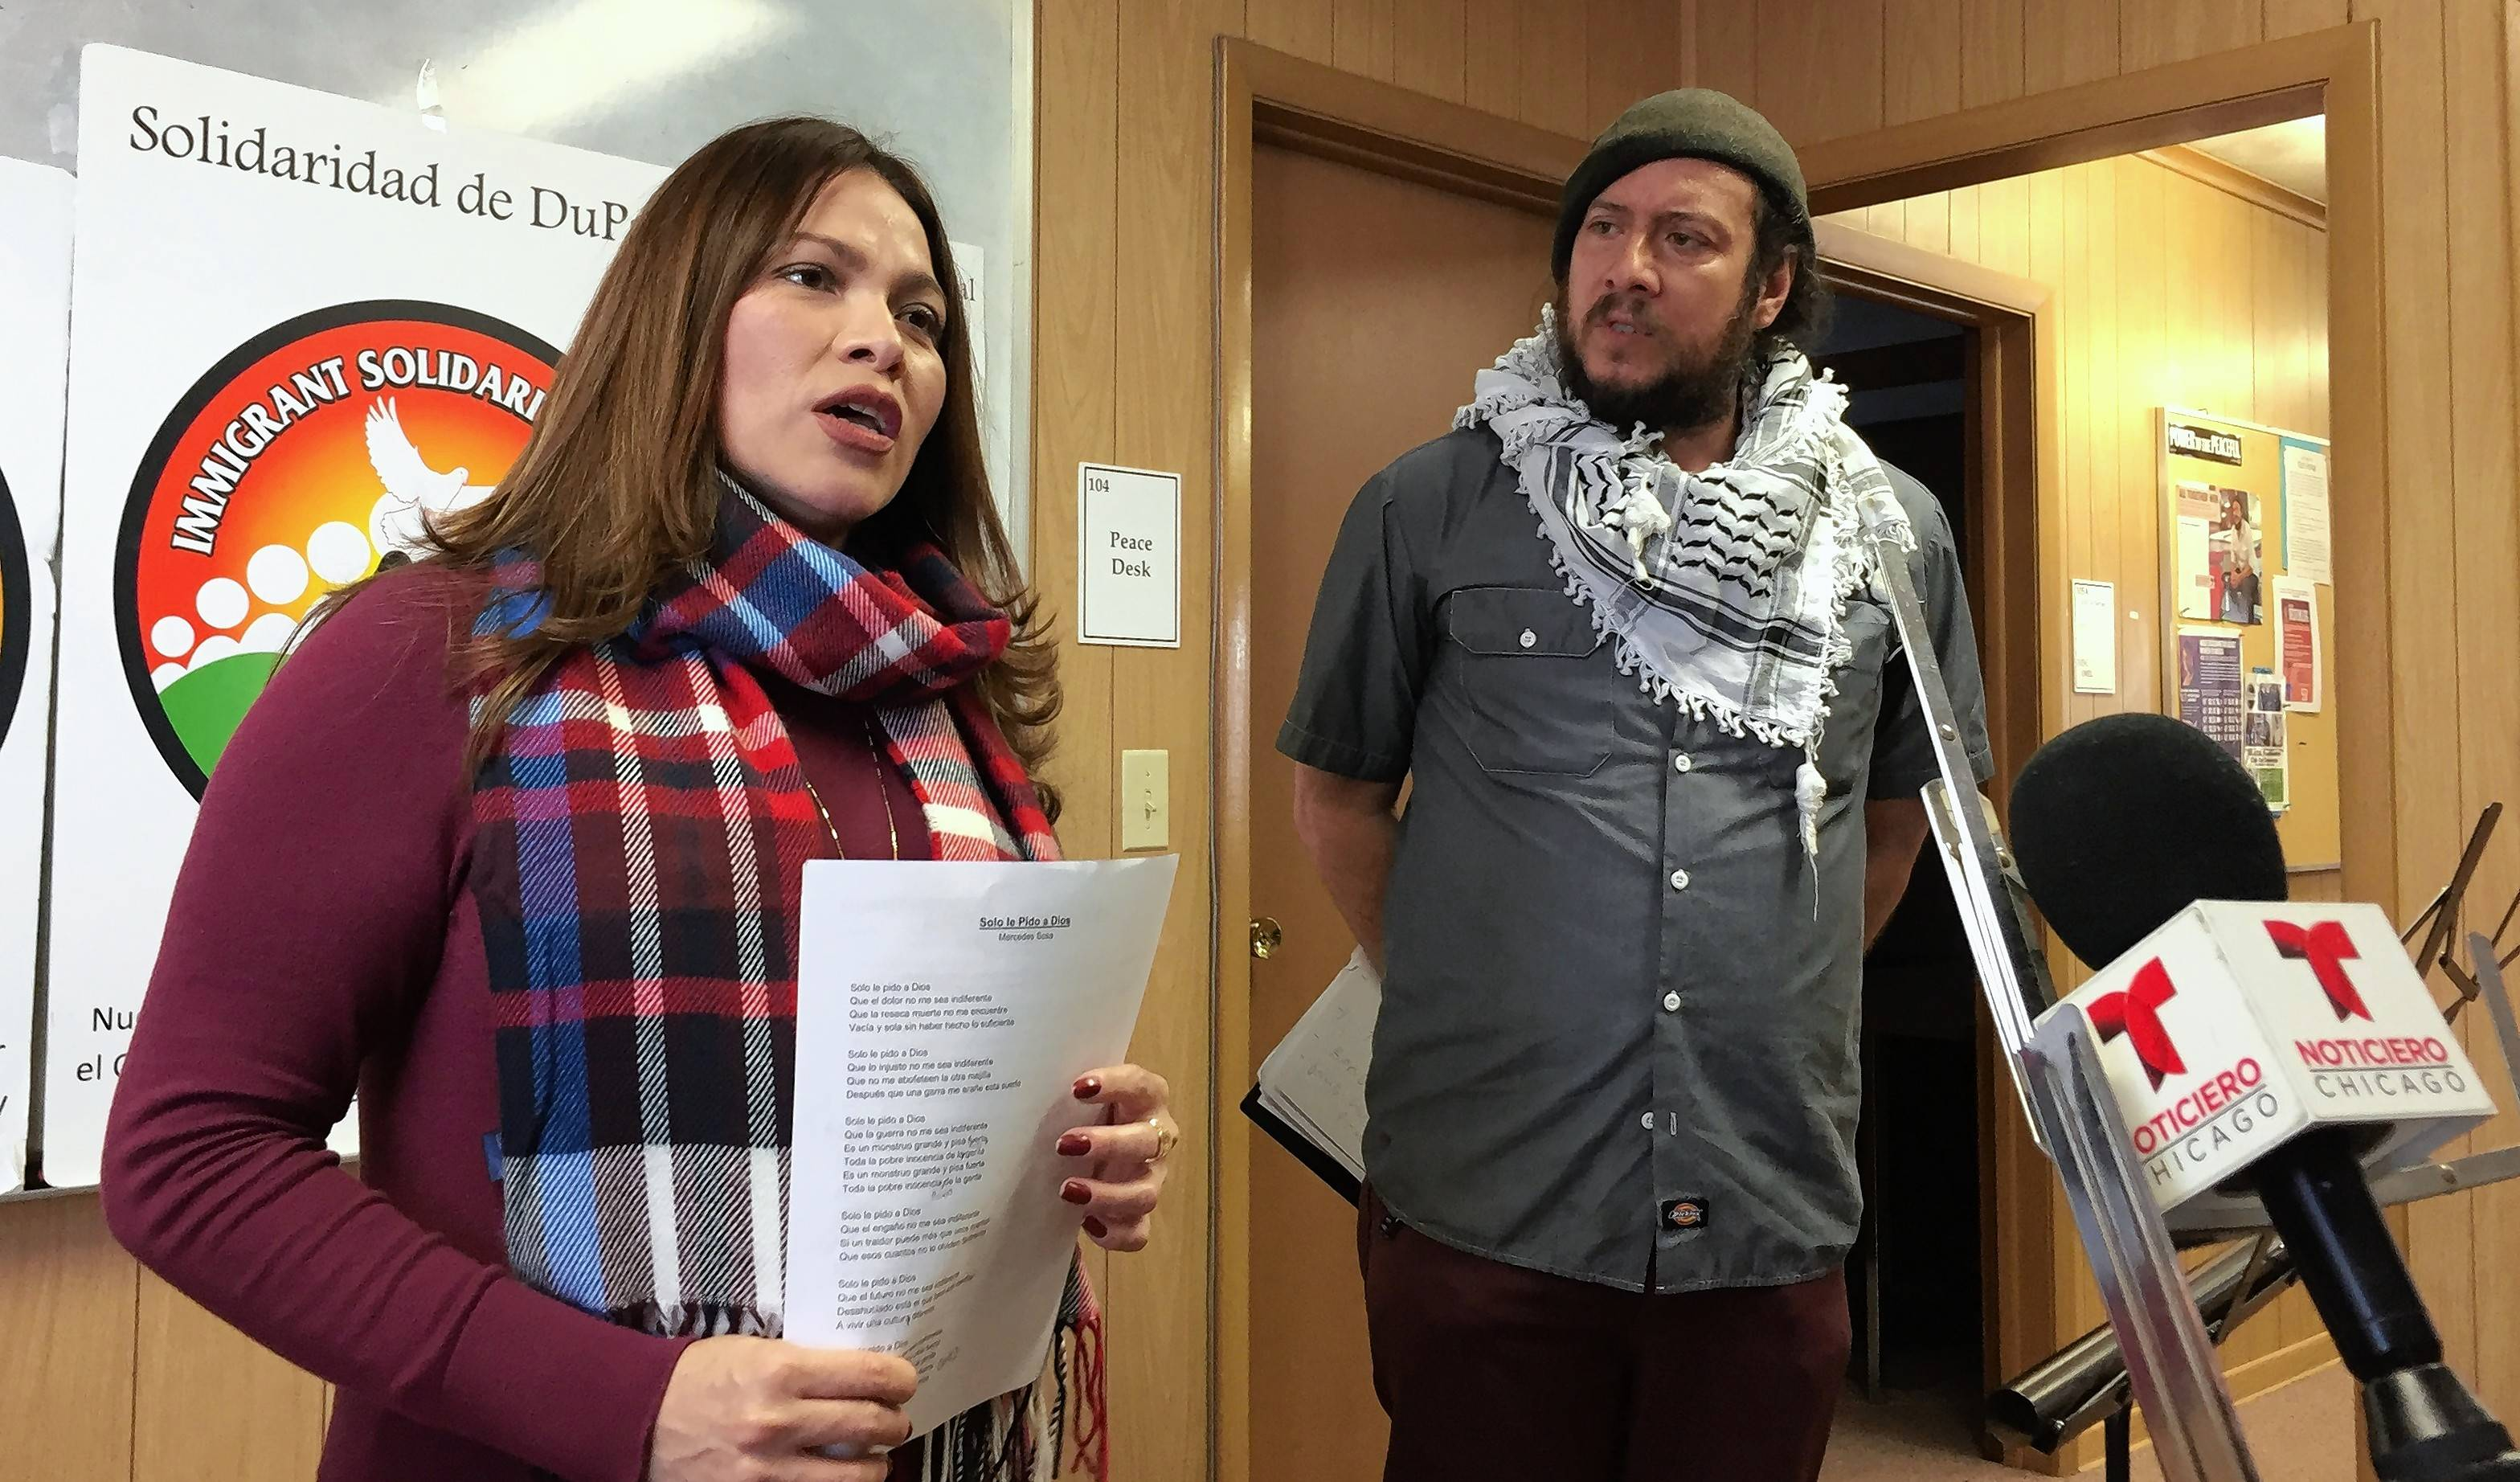 Gabriela Hernandez Chico and Cristobal Cavazos of Immigrant Solidarity DuPage talk about an effort to collect food, clothing and supplies for migrants at the U.S. border with Mexico.